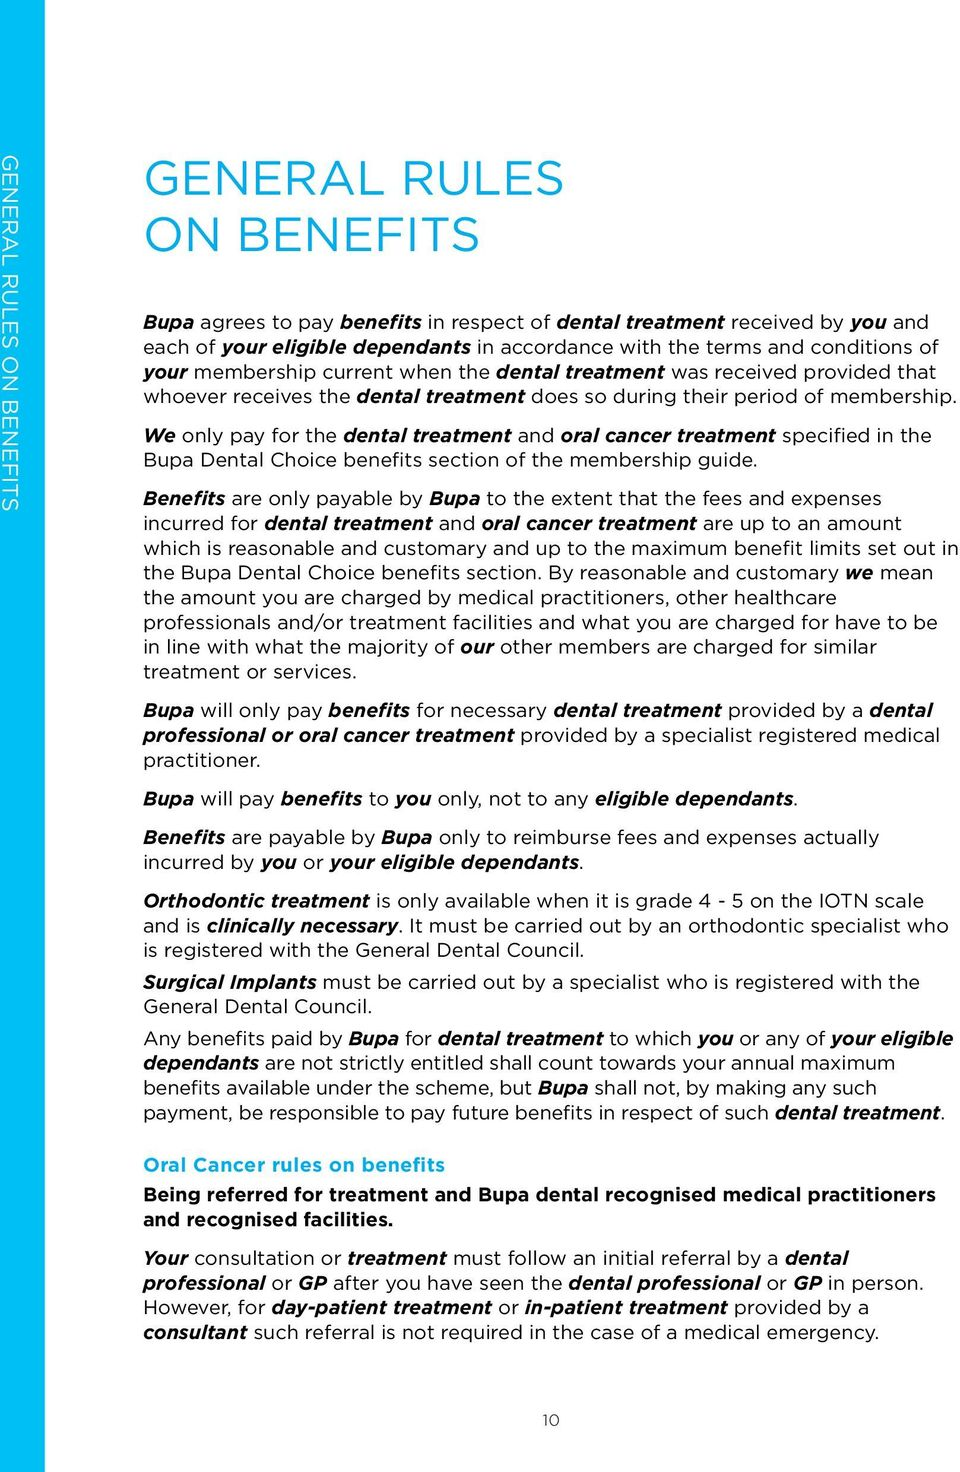 We only pay for the dental treatment and oral cancer treatment specified in the Bupa Dental Choice benefits section of the membership guide.